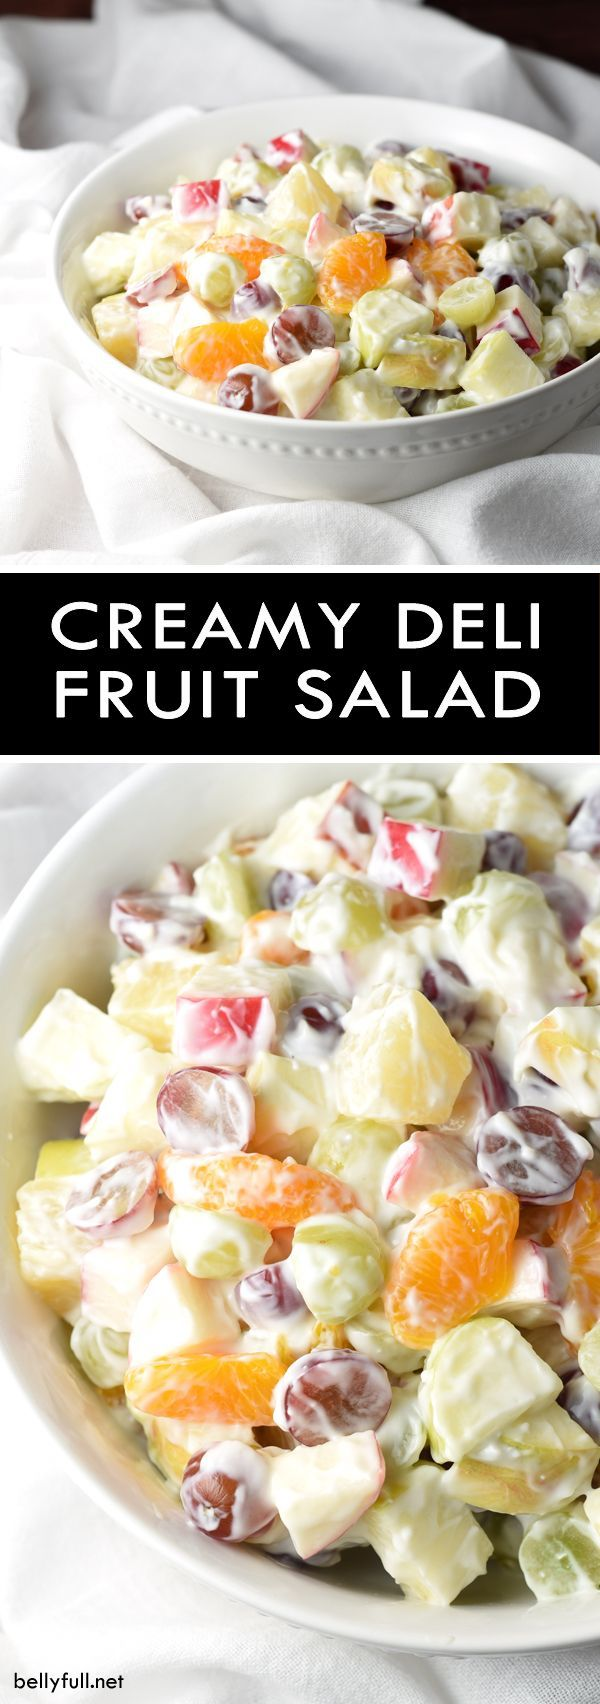 Creamy Delicatessen Fruit Salad #fruitsalad